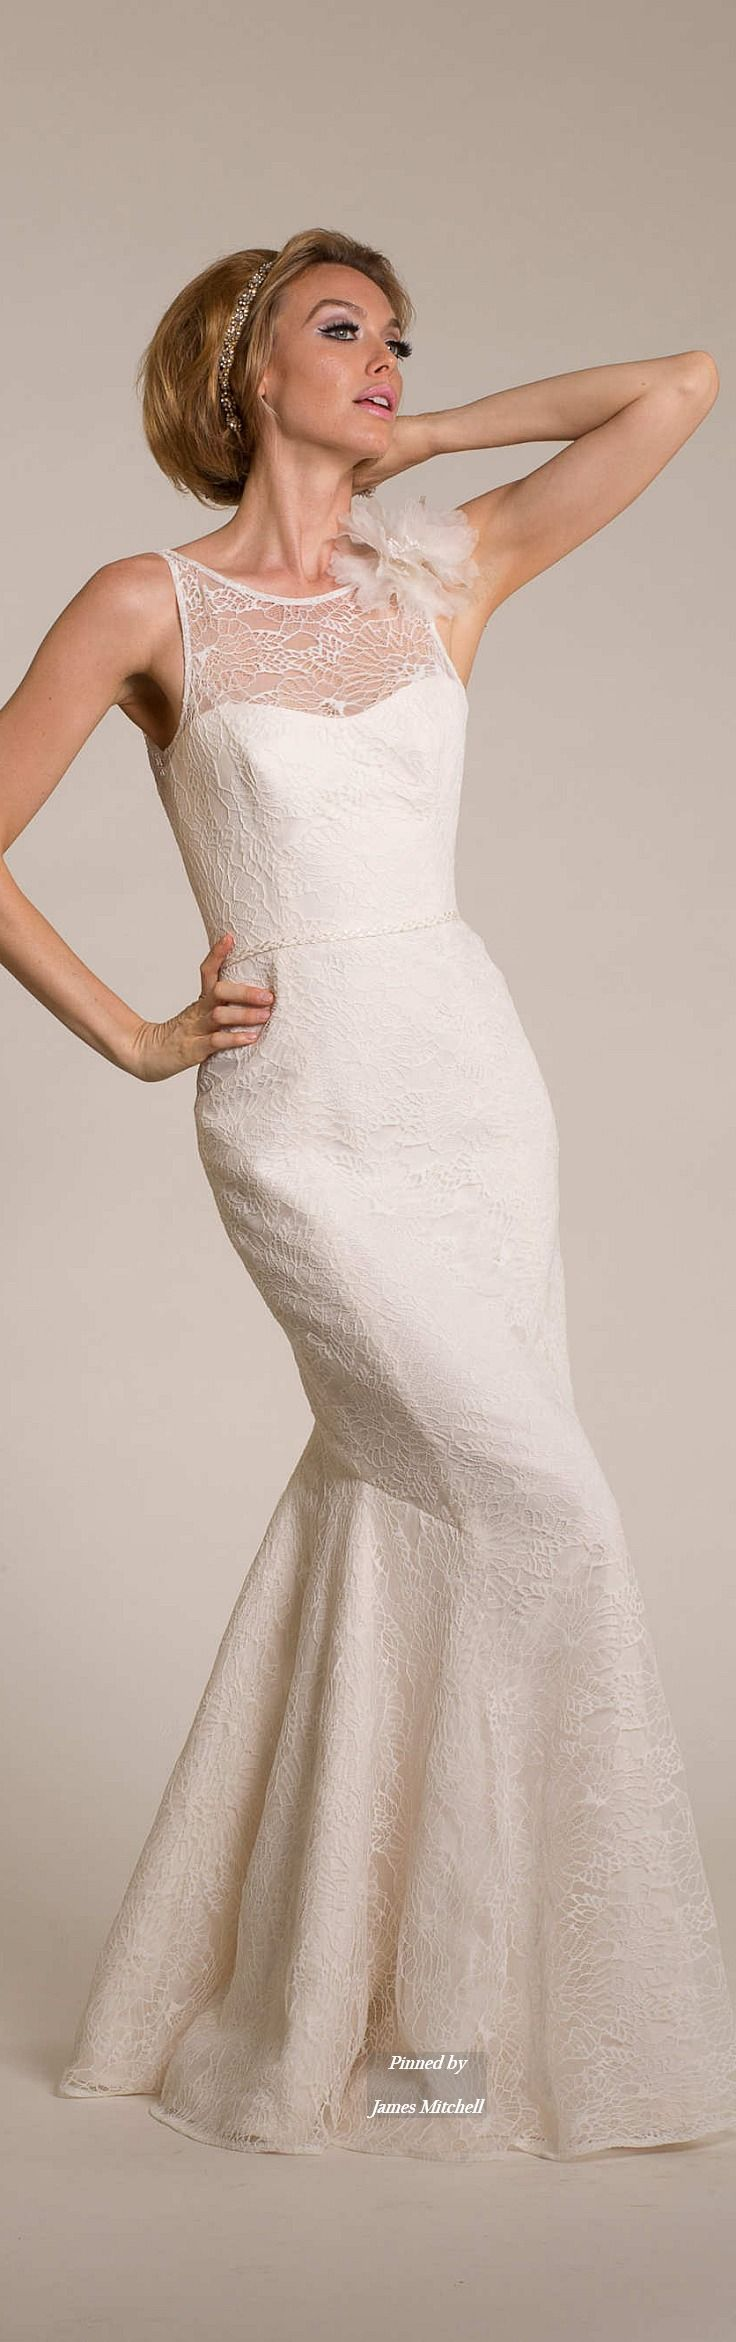 Amy Kuschel Collection Fall 2015 Bridal